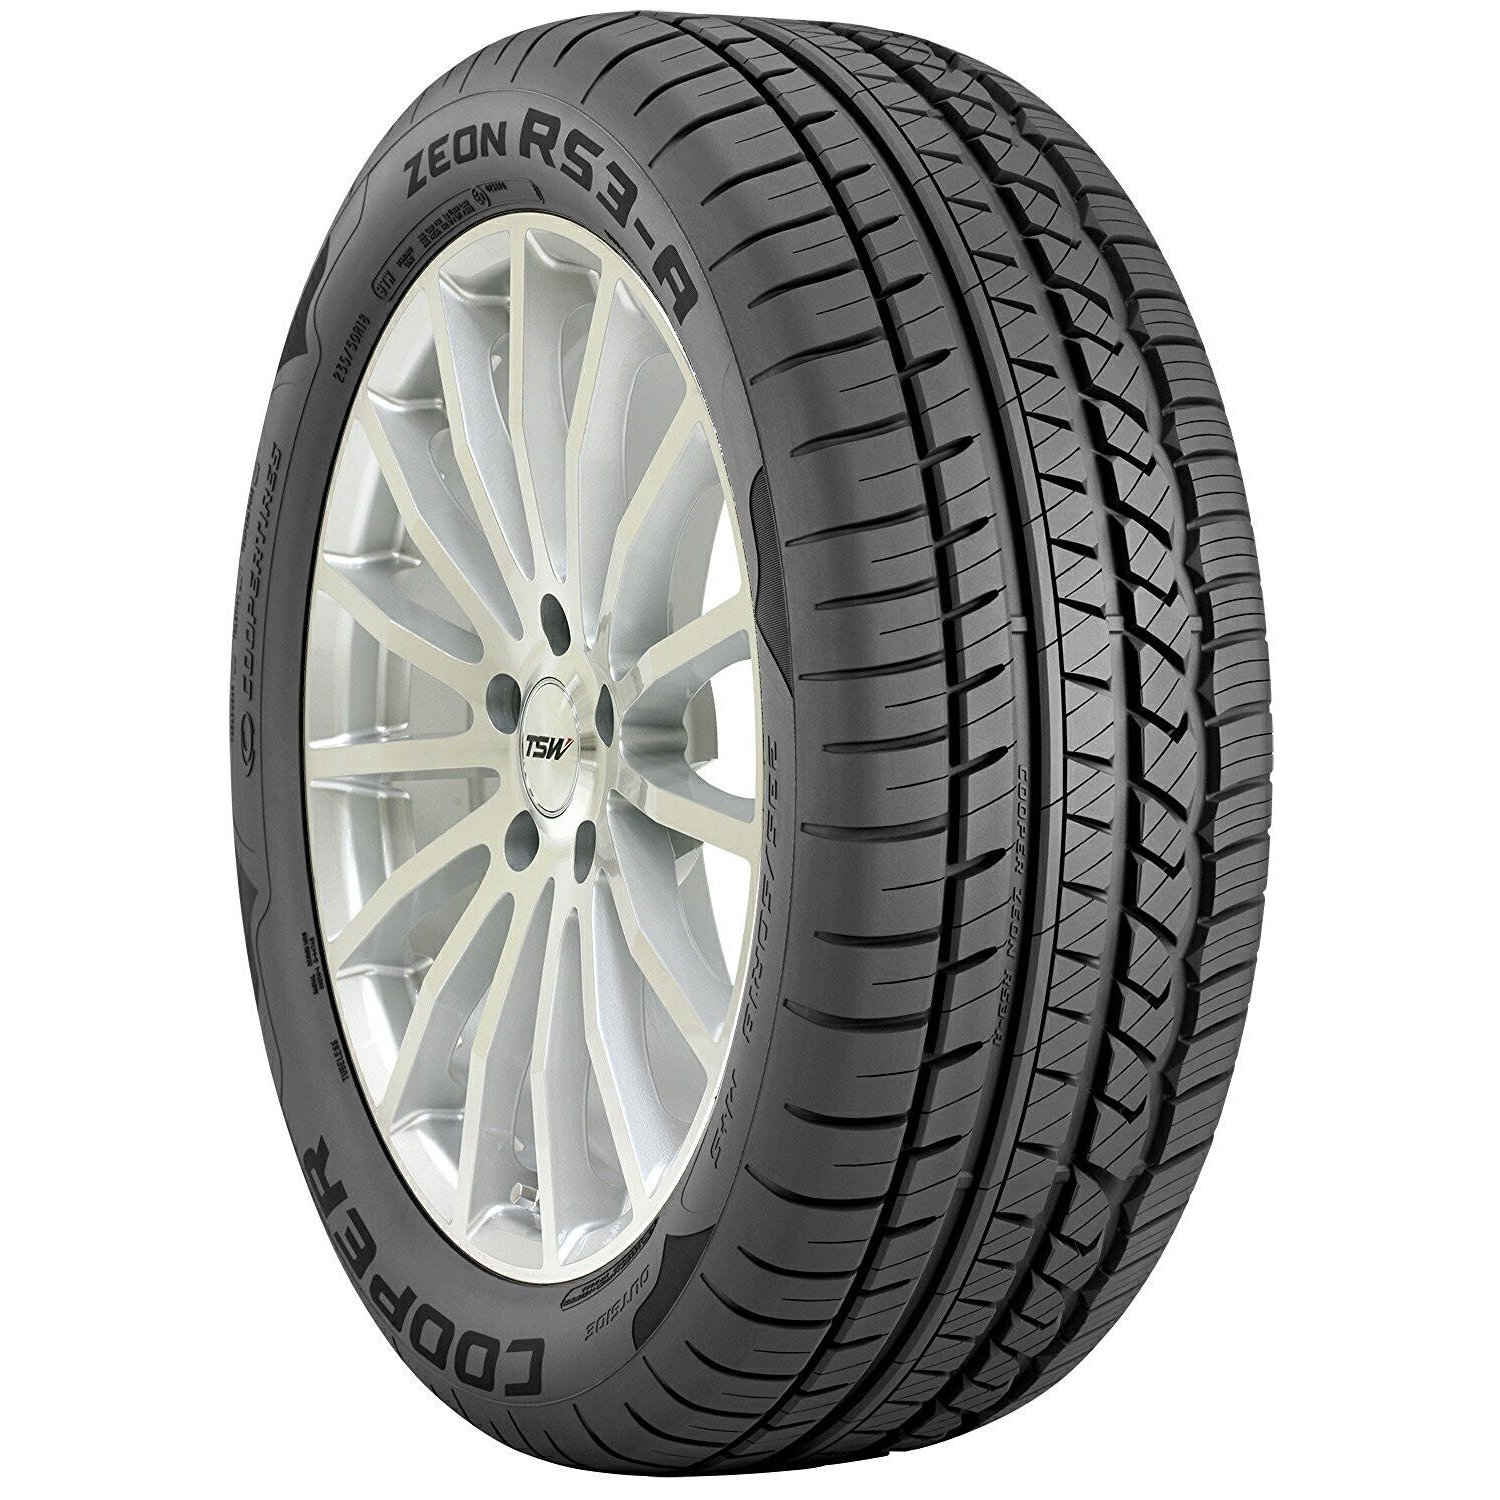 COOPER Zeon RS3-A All Season Performance Tire - 205/50R17...